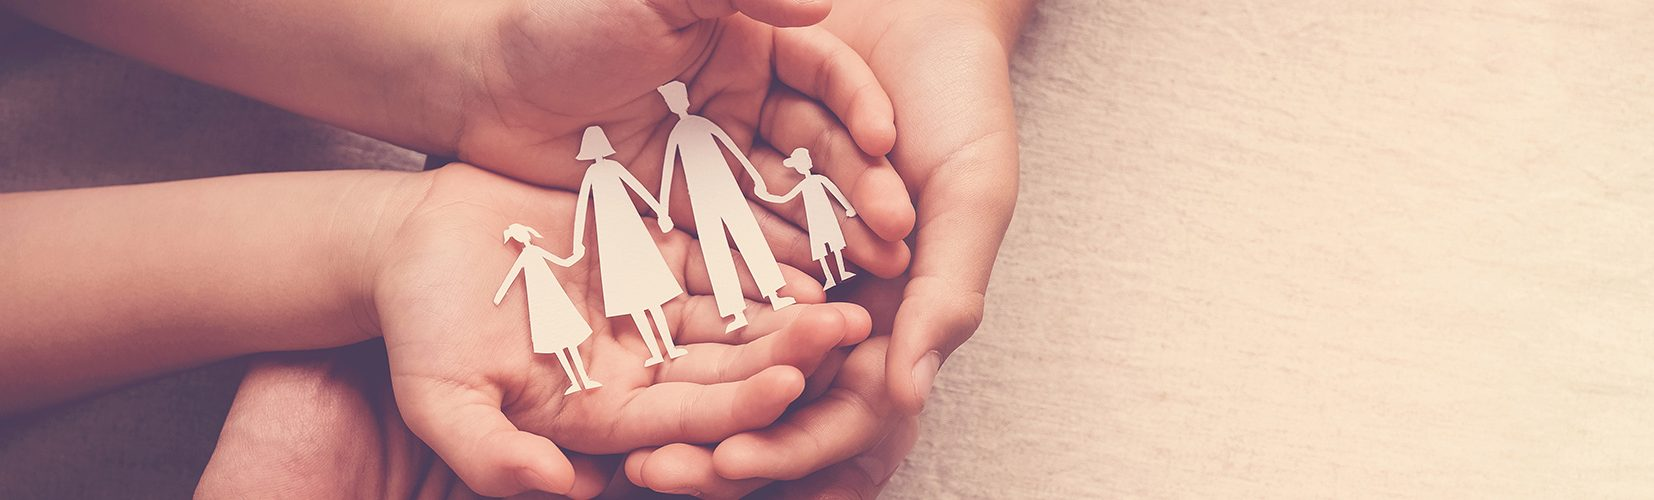 Bild Quelle: AdobeStock_282163930_©sewcream _hands holding paper family cutout, family home,life insurance, adoption foster care